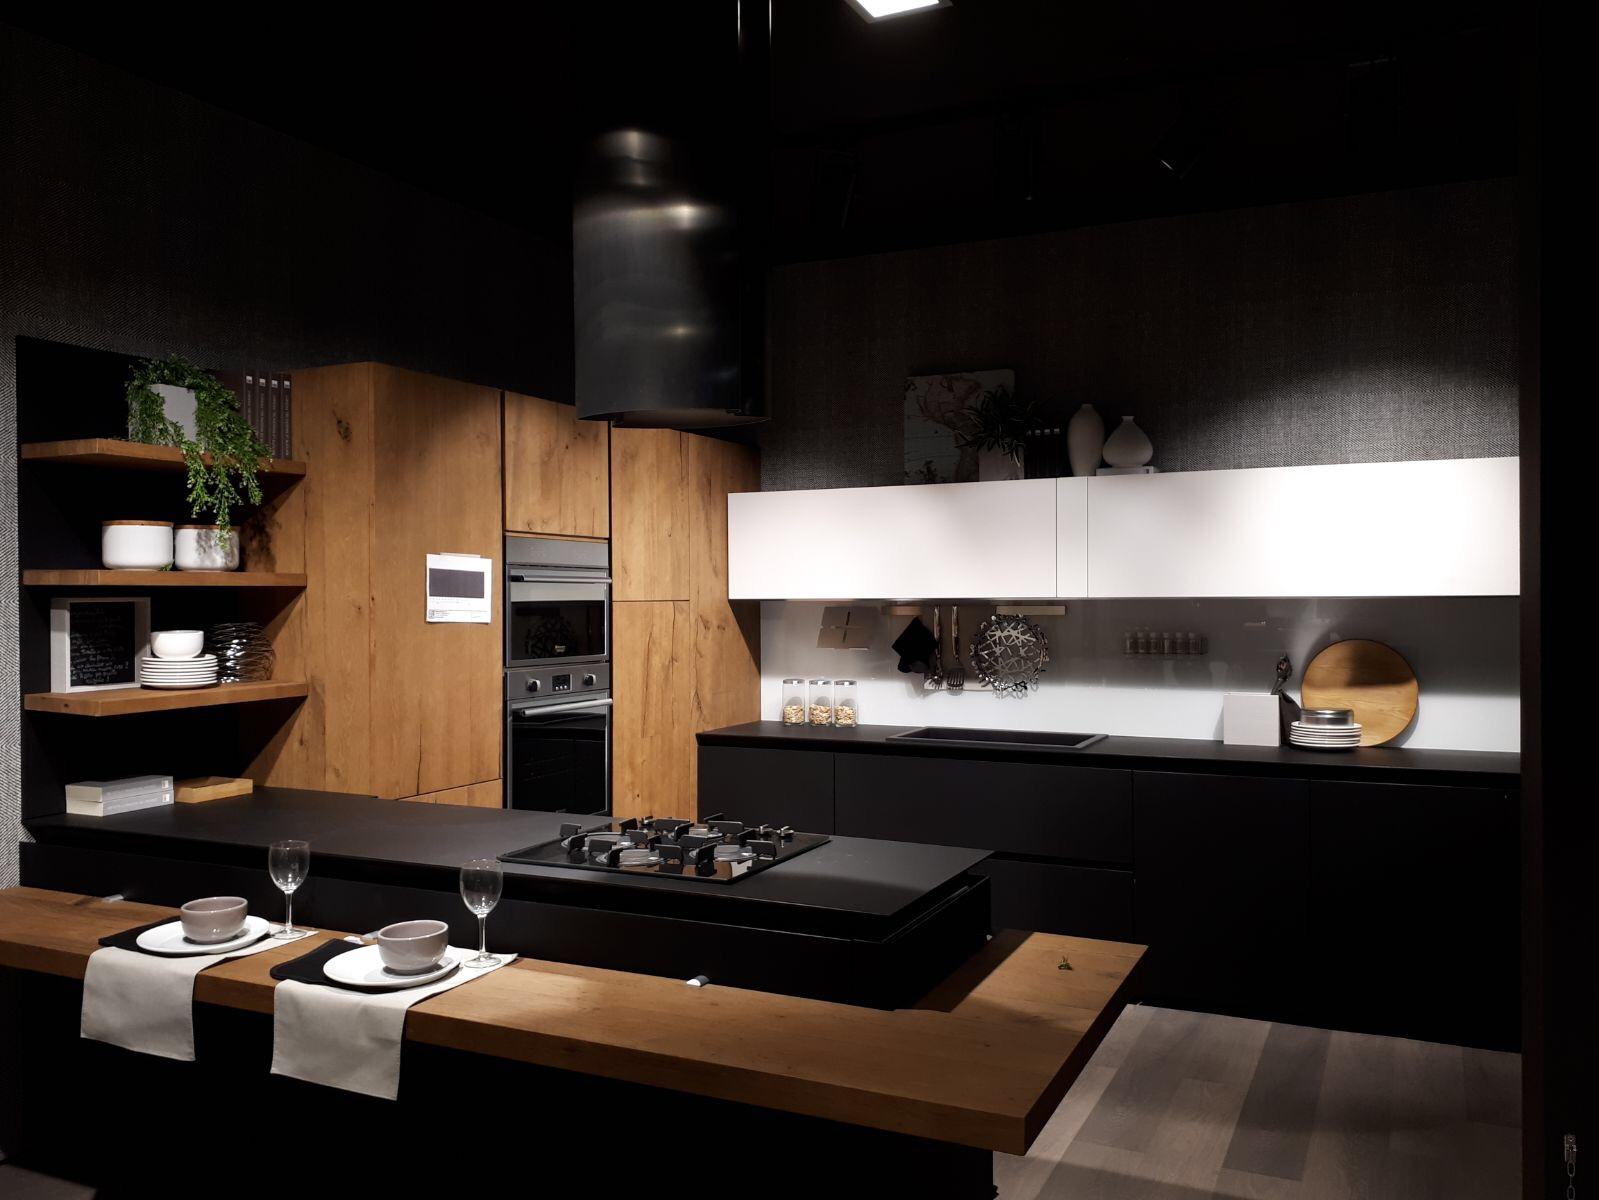 New event for Gruppo Lube in Florence - Cucine Lube